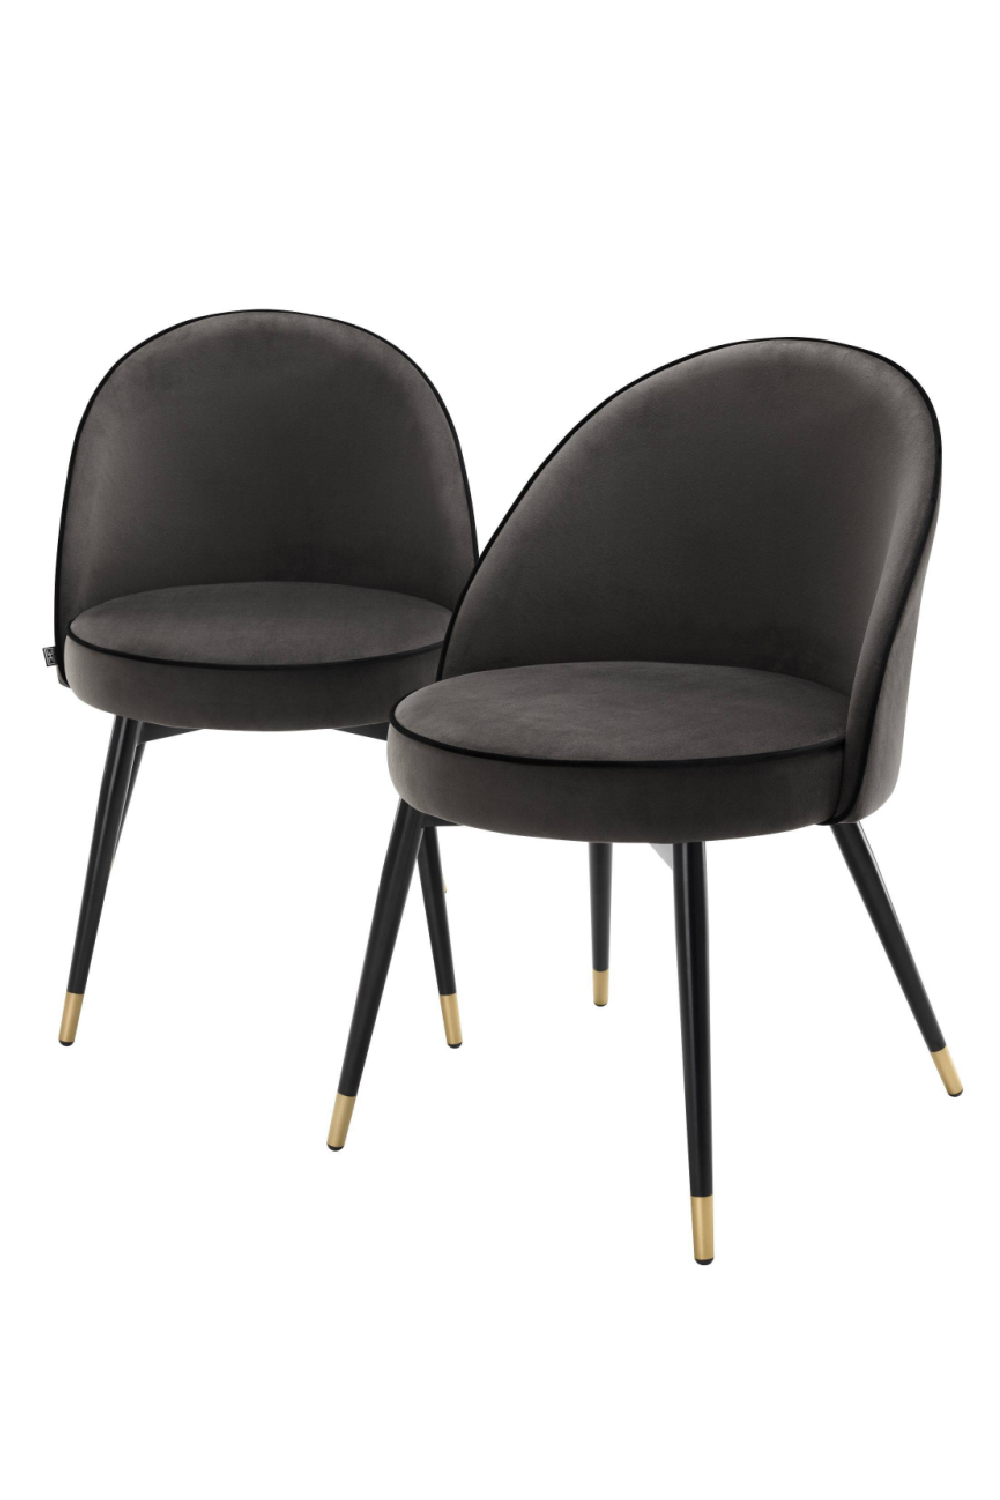 Dark Gray Dining Chair Set Of 2 | Eichholtz | #1Eichholtz Retailer